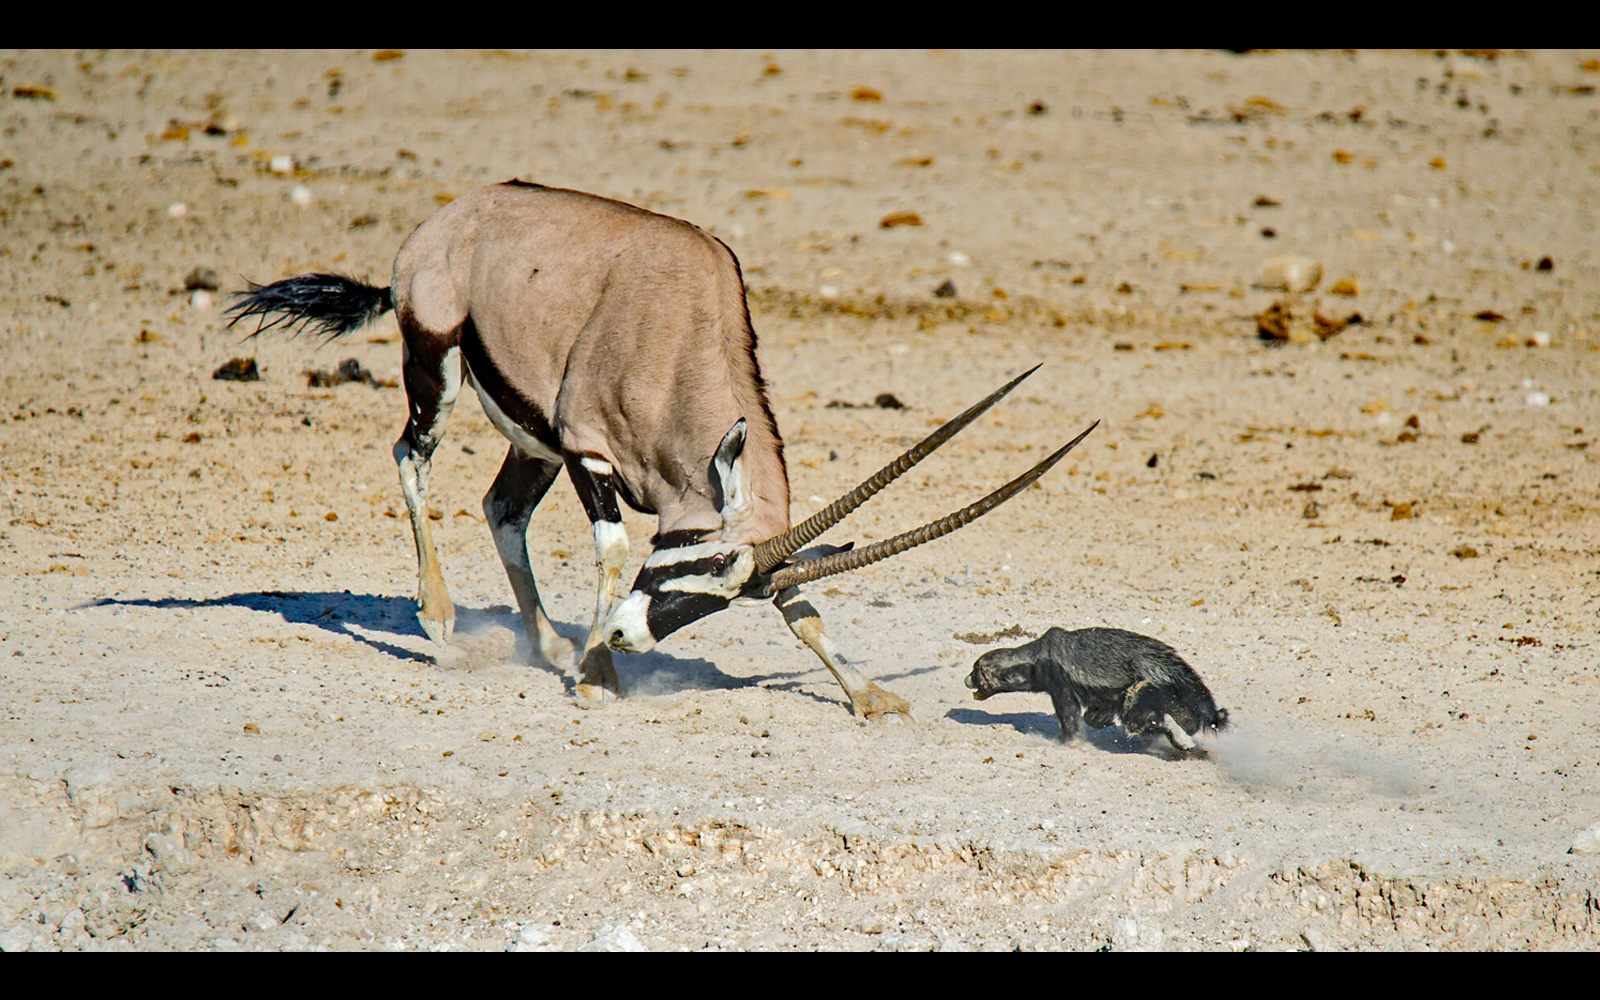 """""""Badger charge"""" – a honey badger charges an oryx in Etosha National Park, Namibia © Dirk Theron (Click <a href=""""https://africageographic.com/blog/honey-badger-dont-care/""""target=""""_blank"""">here</a> to see what happened next!)"""